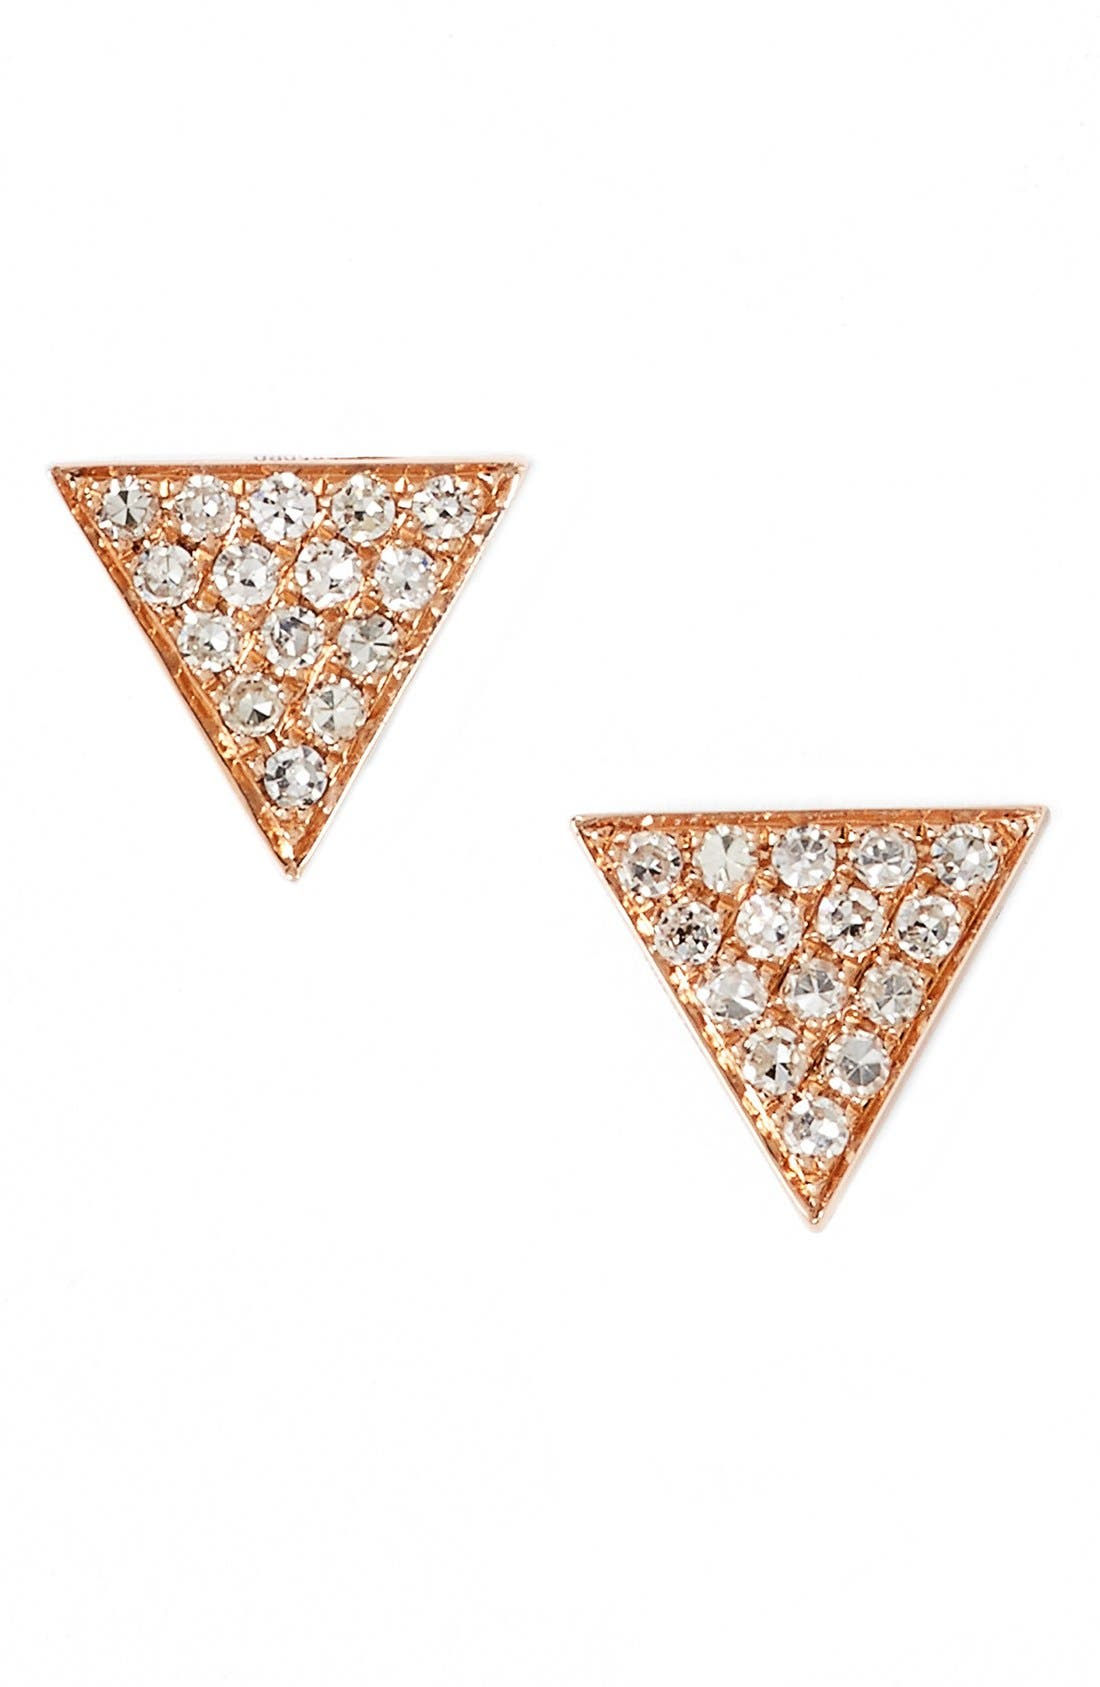 Alternate Image 1 Selected - Dana Rebecca Designs 'Emily Sarah' Diamond Pavé Triangle Stud Earrings (Nordstrom Exclusive)